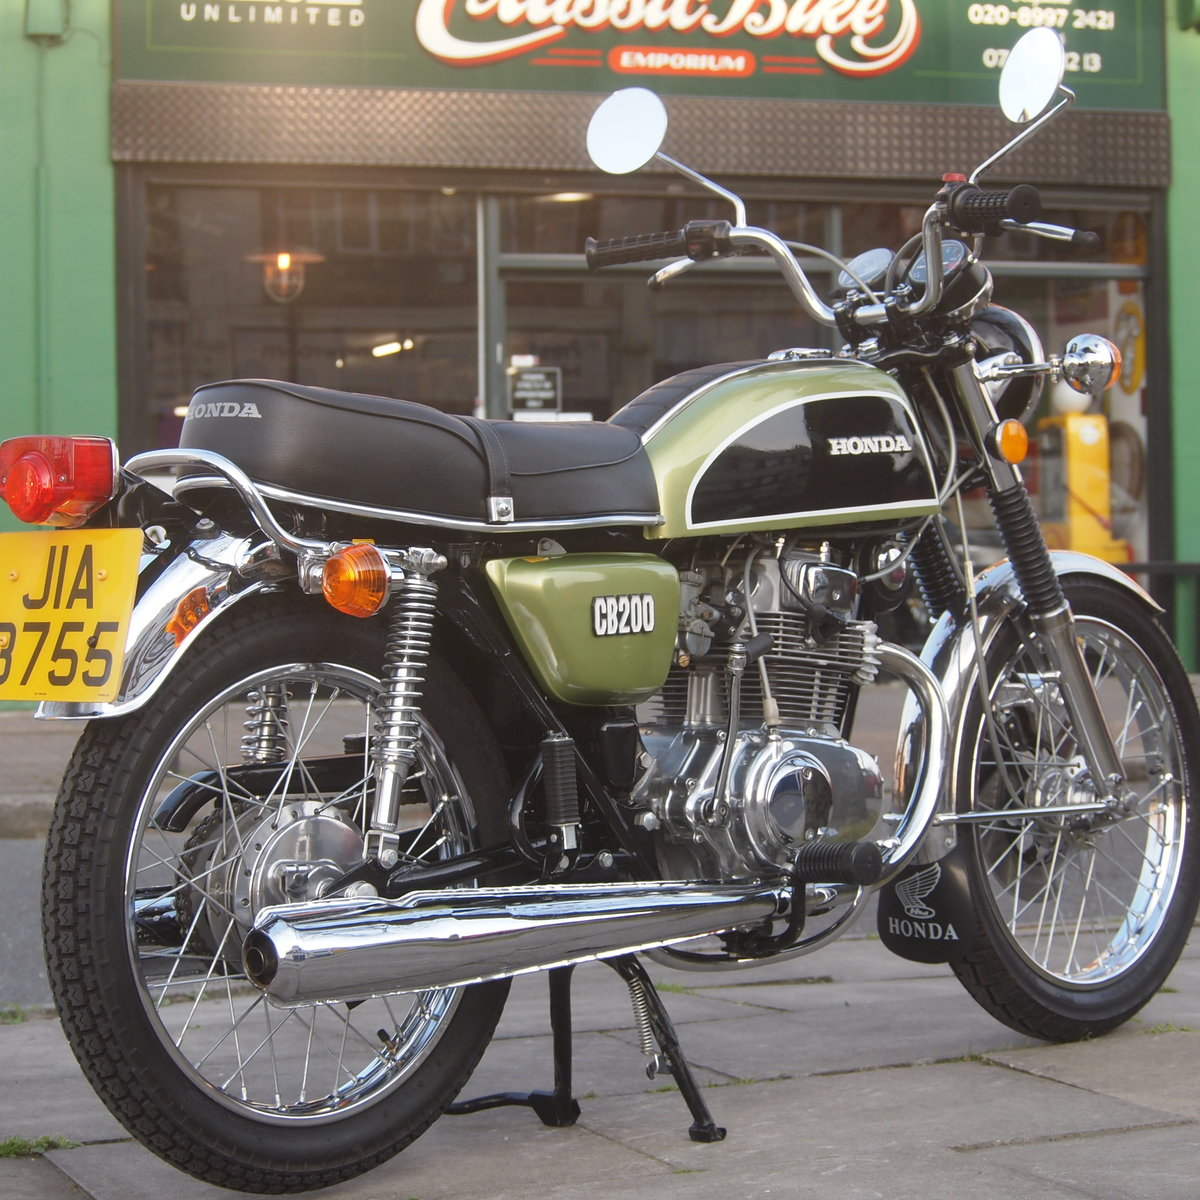 1976 Honda CB200 UK Bike, RESERVED FOR SHAUN. SOLD (picture 1 of 6)